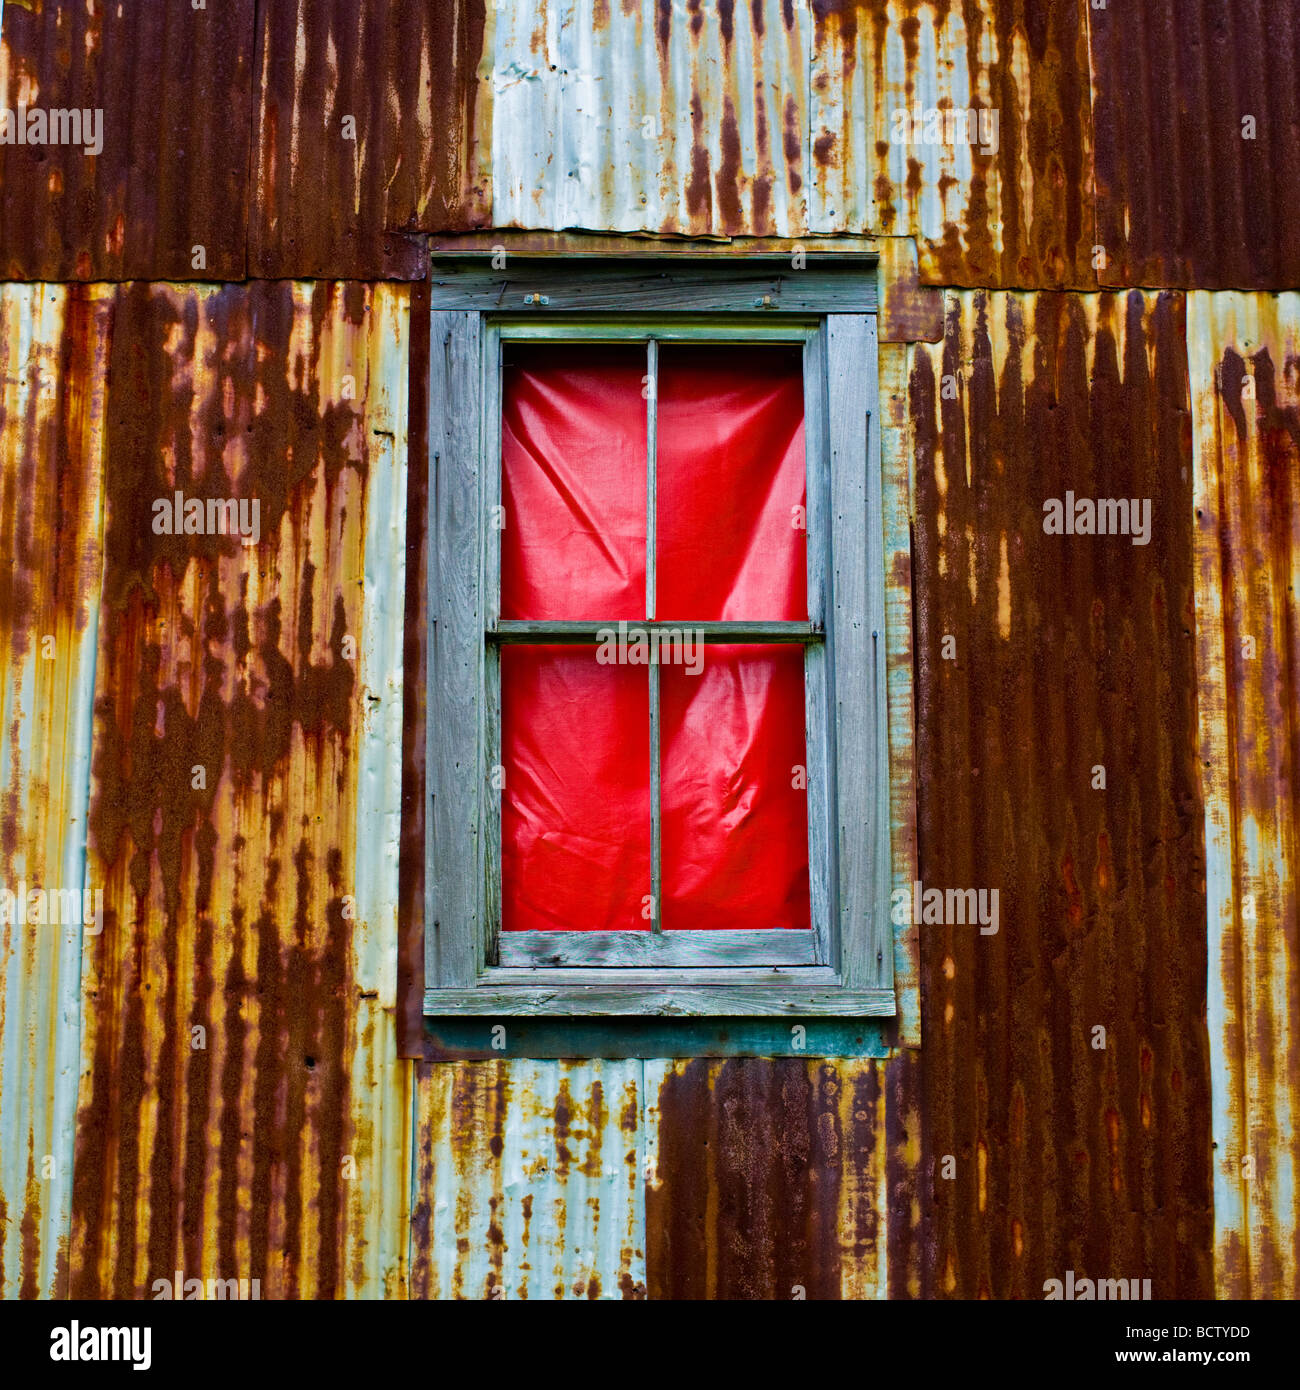 Close-up of a window in a rusty corrugated iron house - Stock Image